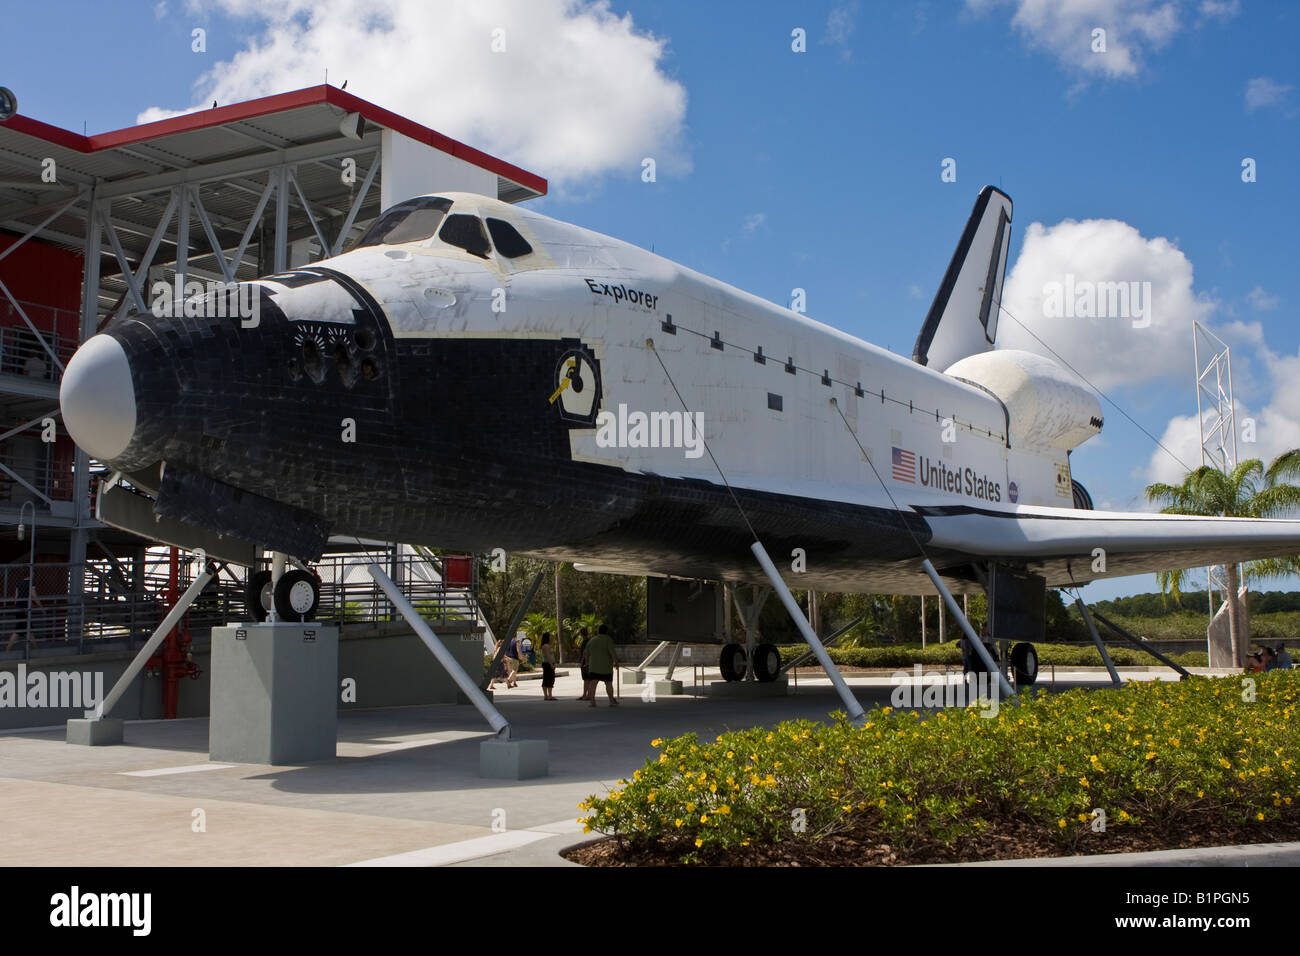 florida space shuttle - photo #29